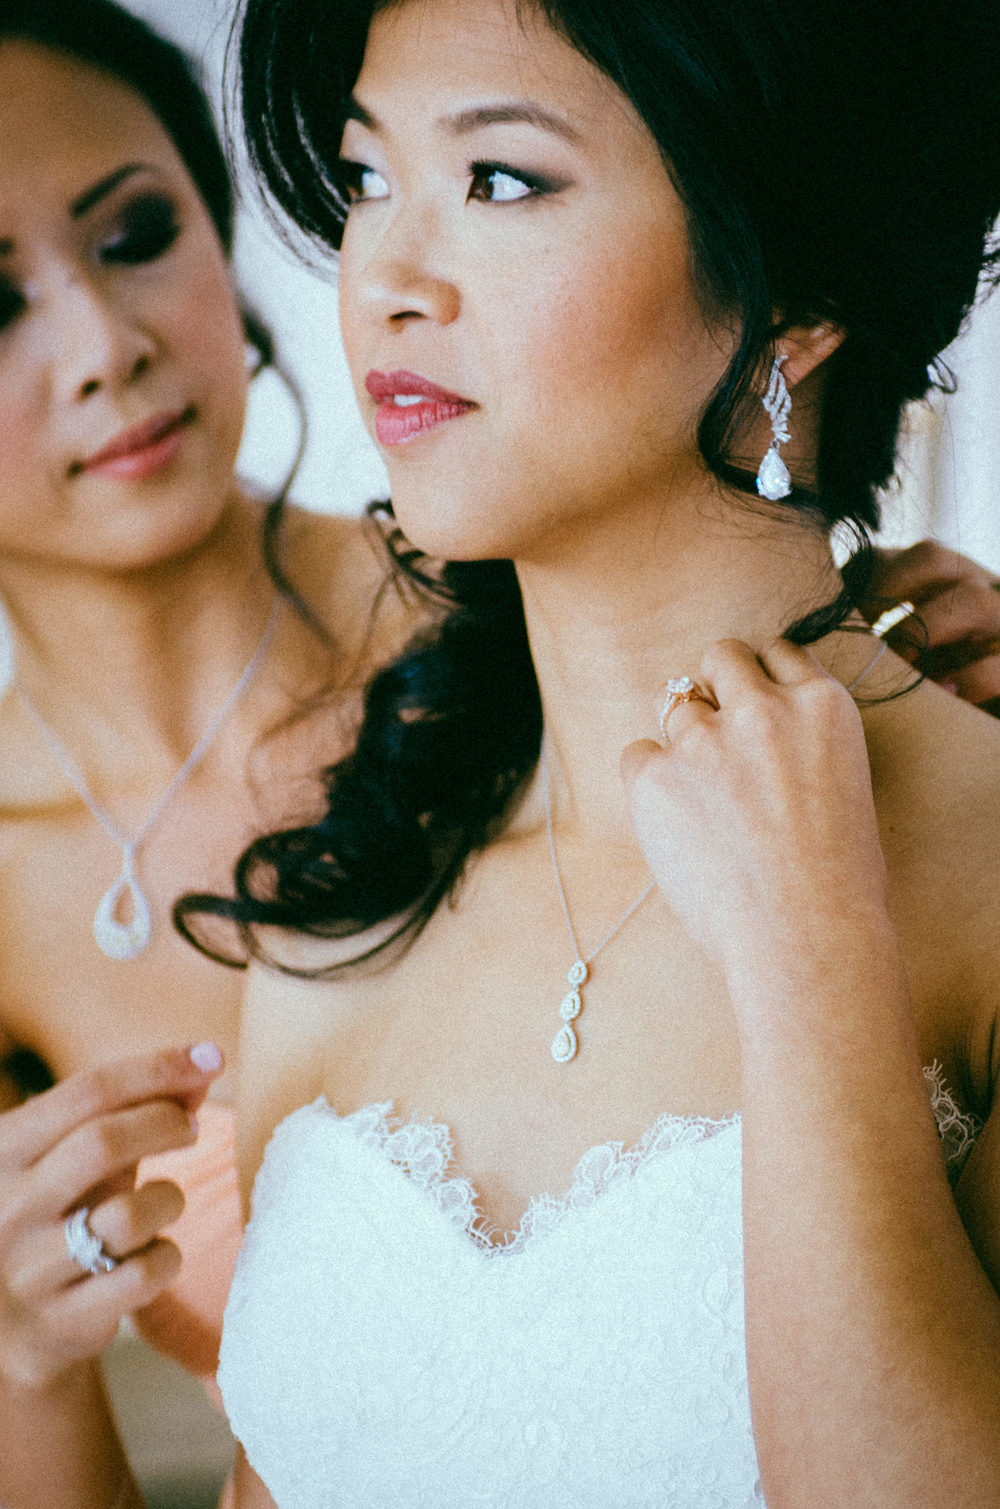 Alice_&_Aaron_Wedding_by_The_Light_&_Glass_Photography-027.jpg